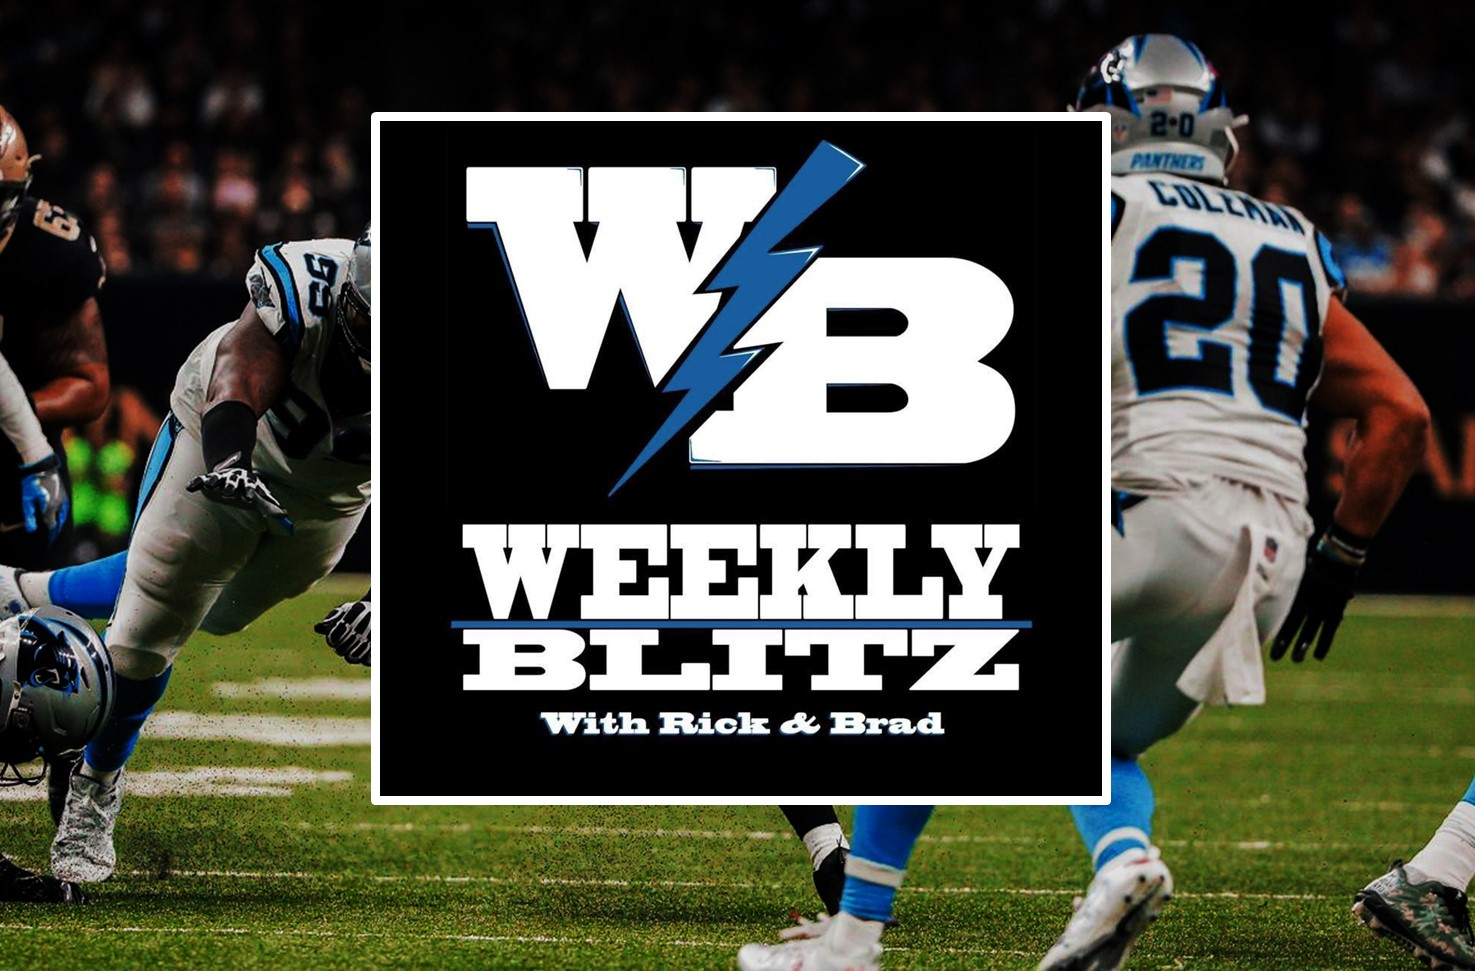 Weekly Blitz NFL College Football